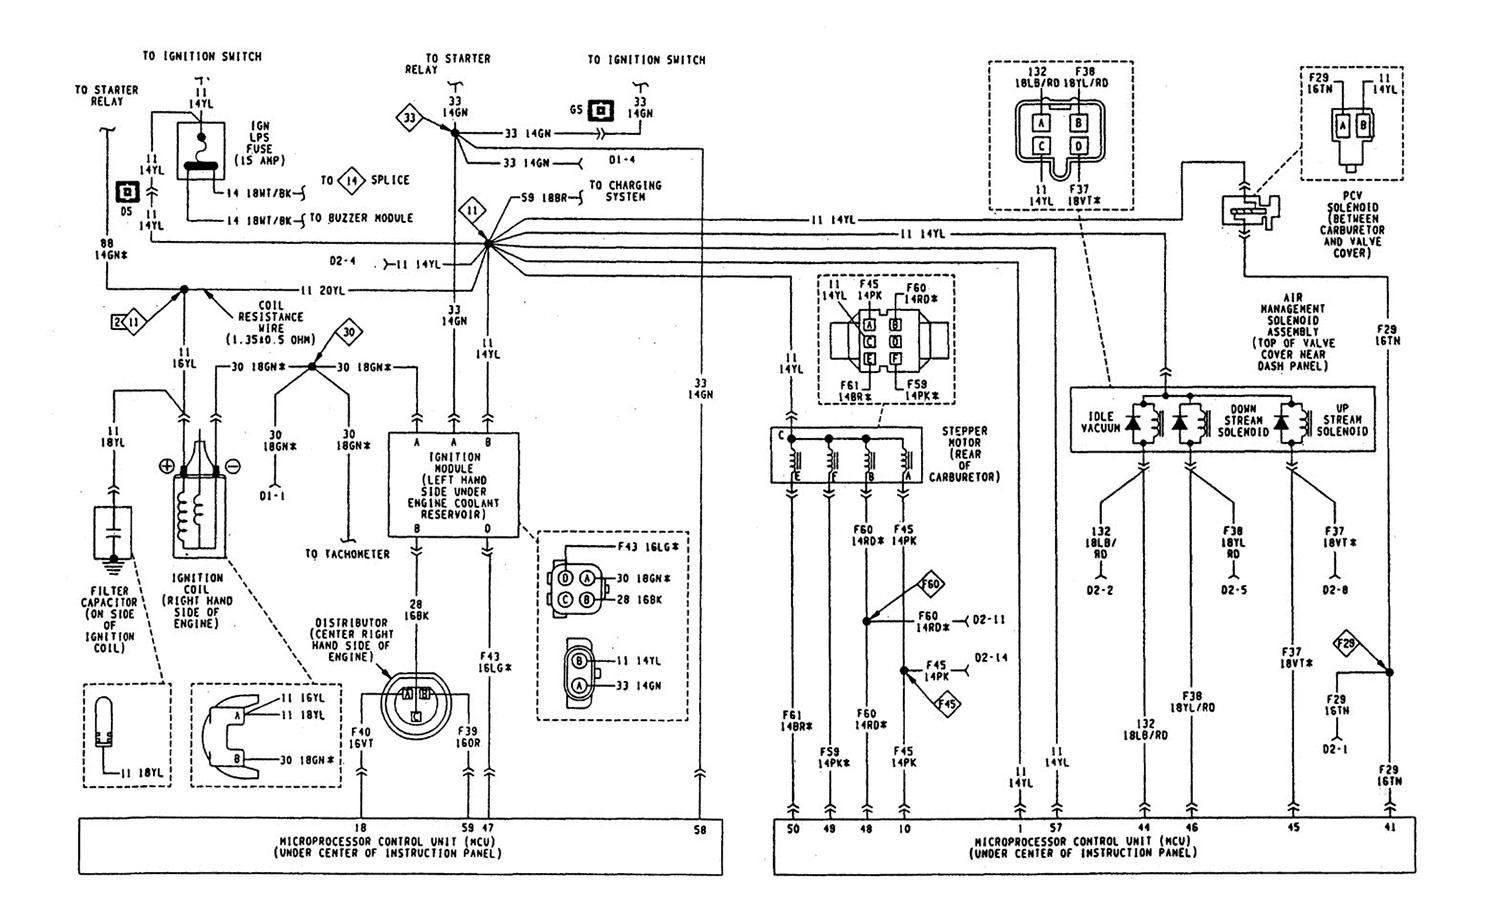 2015 wrangler wiring diagram - 1966 mustang wire harness -  bathroom-vents.2014ok.jeanjaures37.fr  wiring diagram